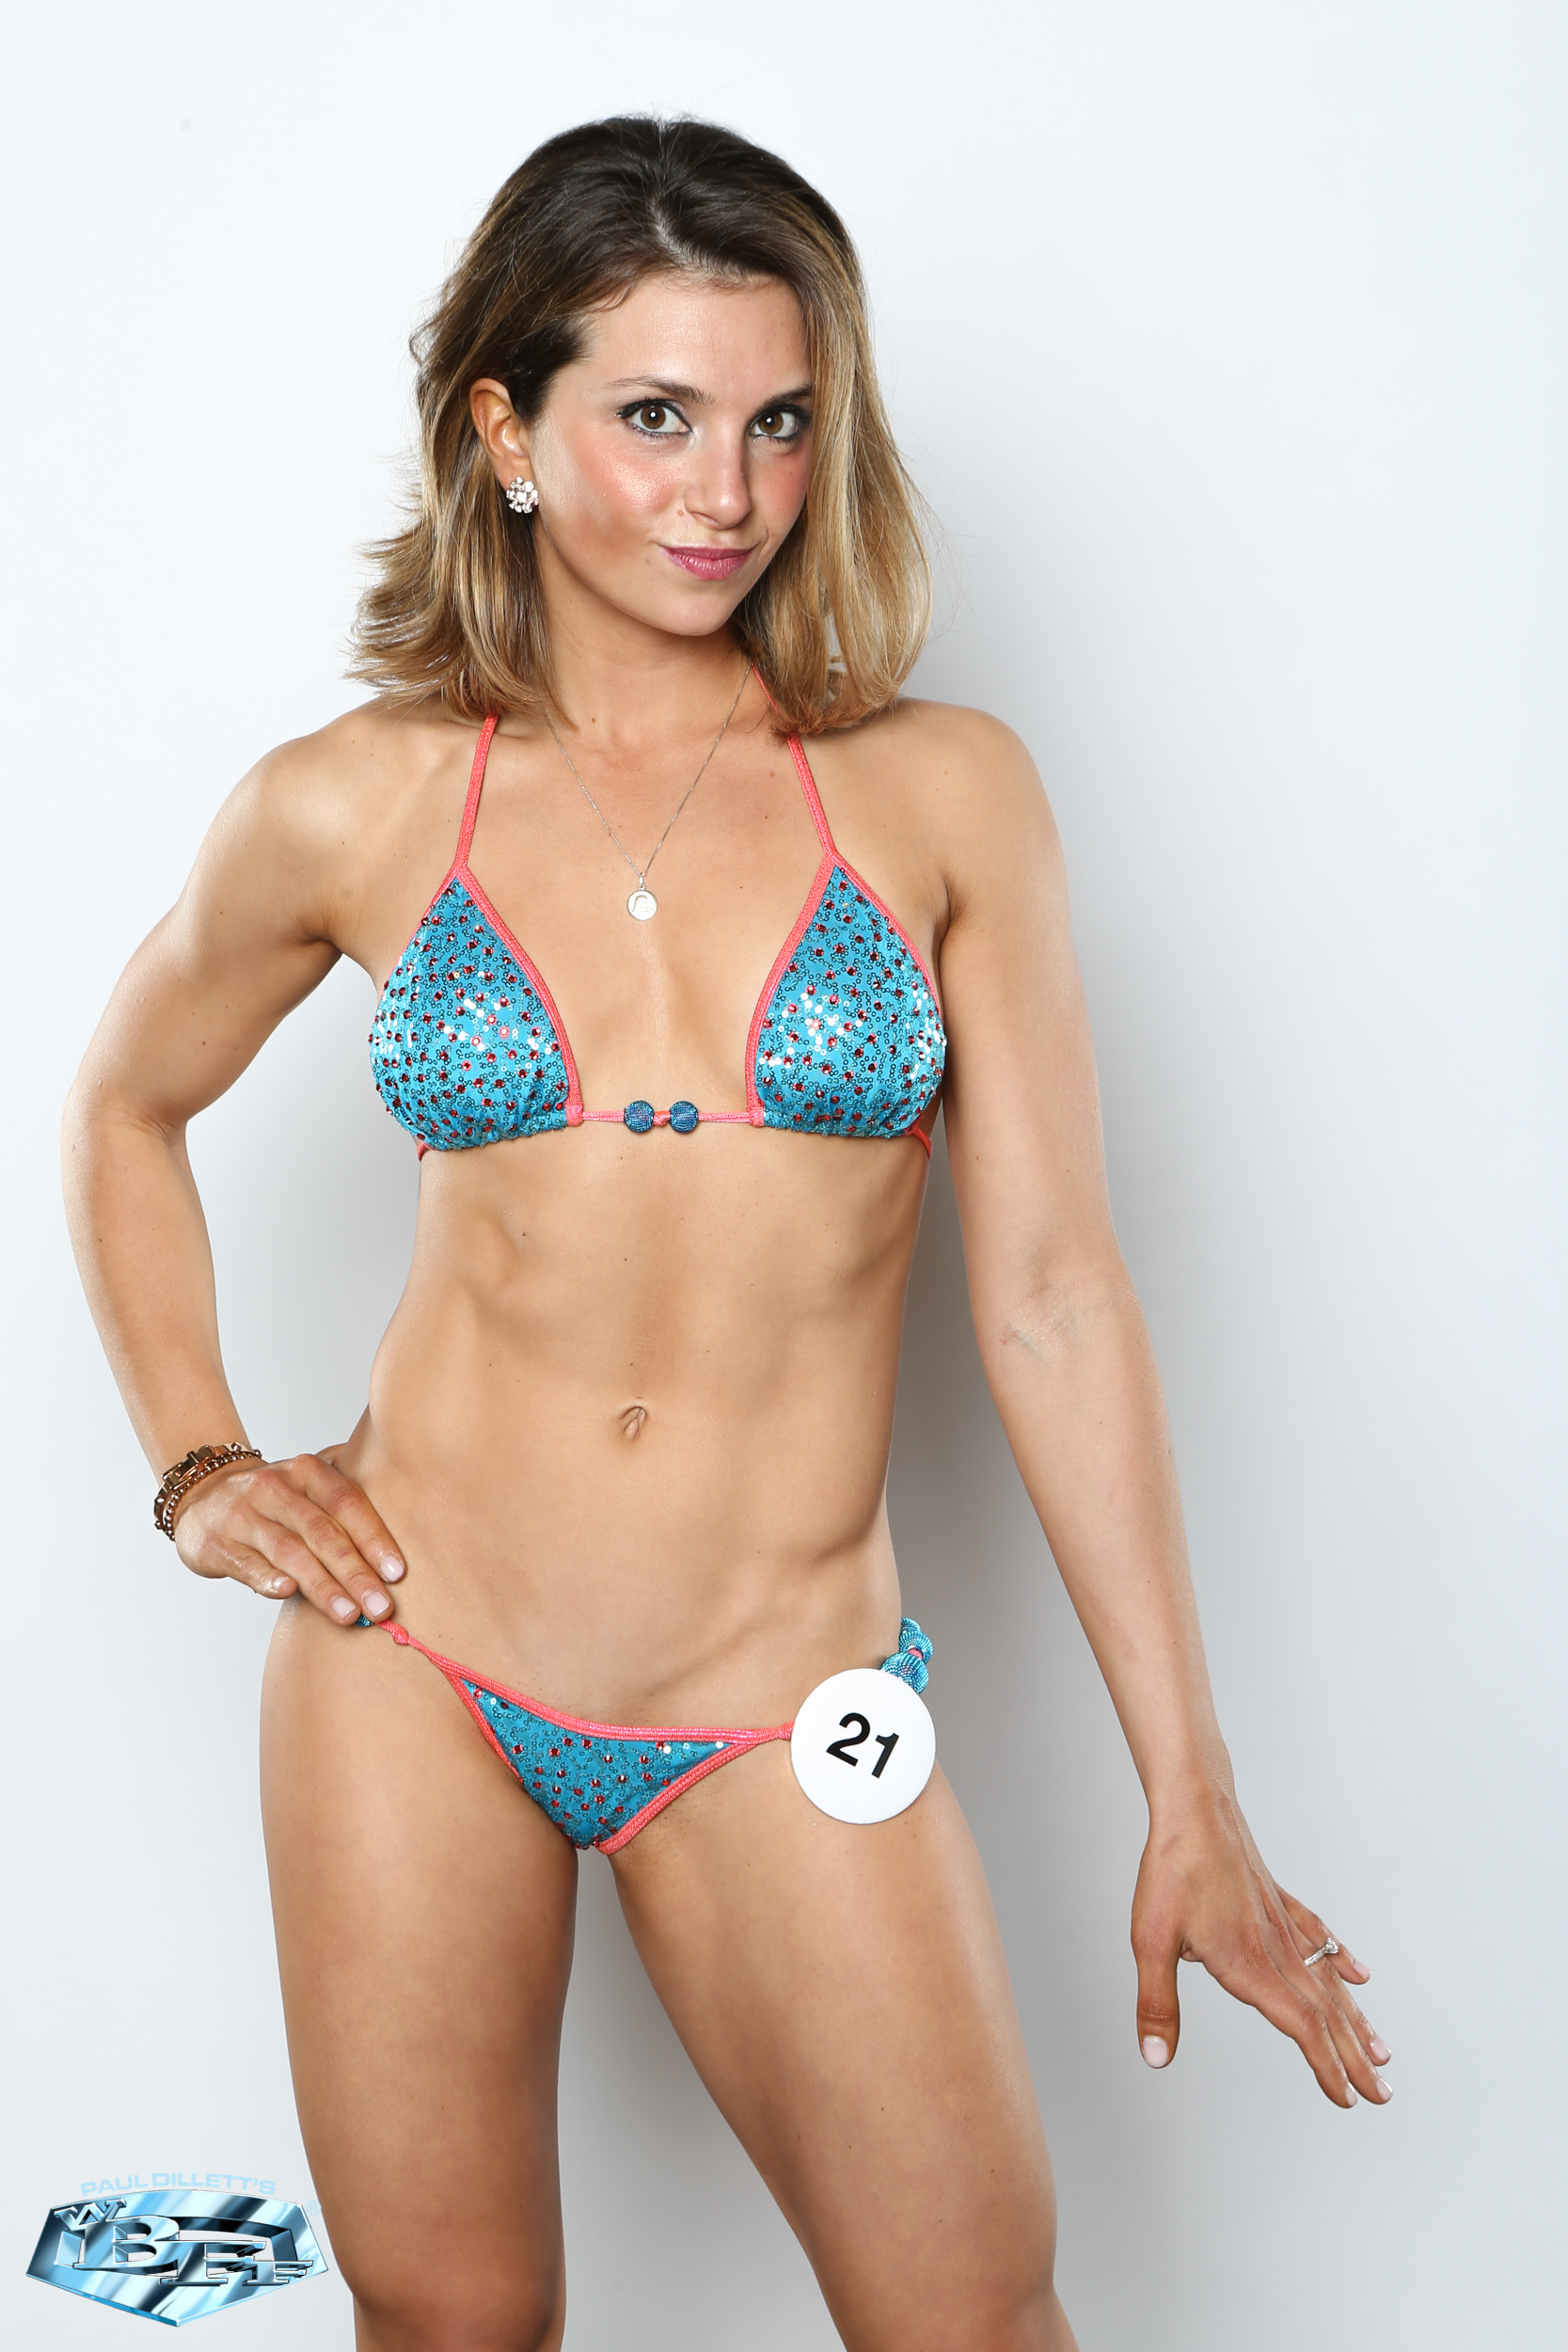 bikini competitor galleries jpg 1152x768